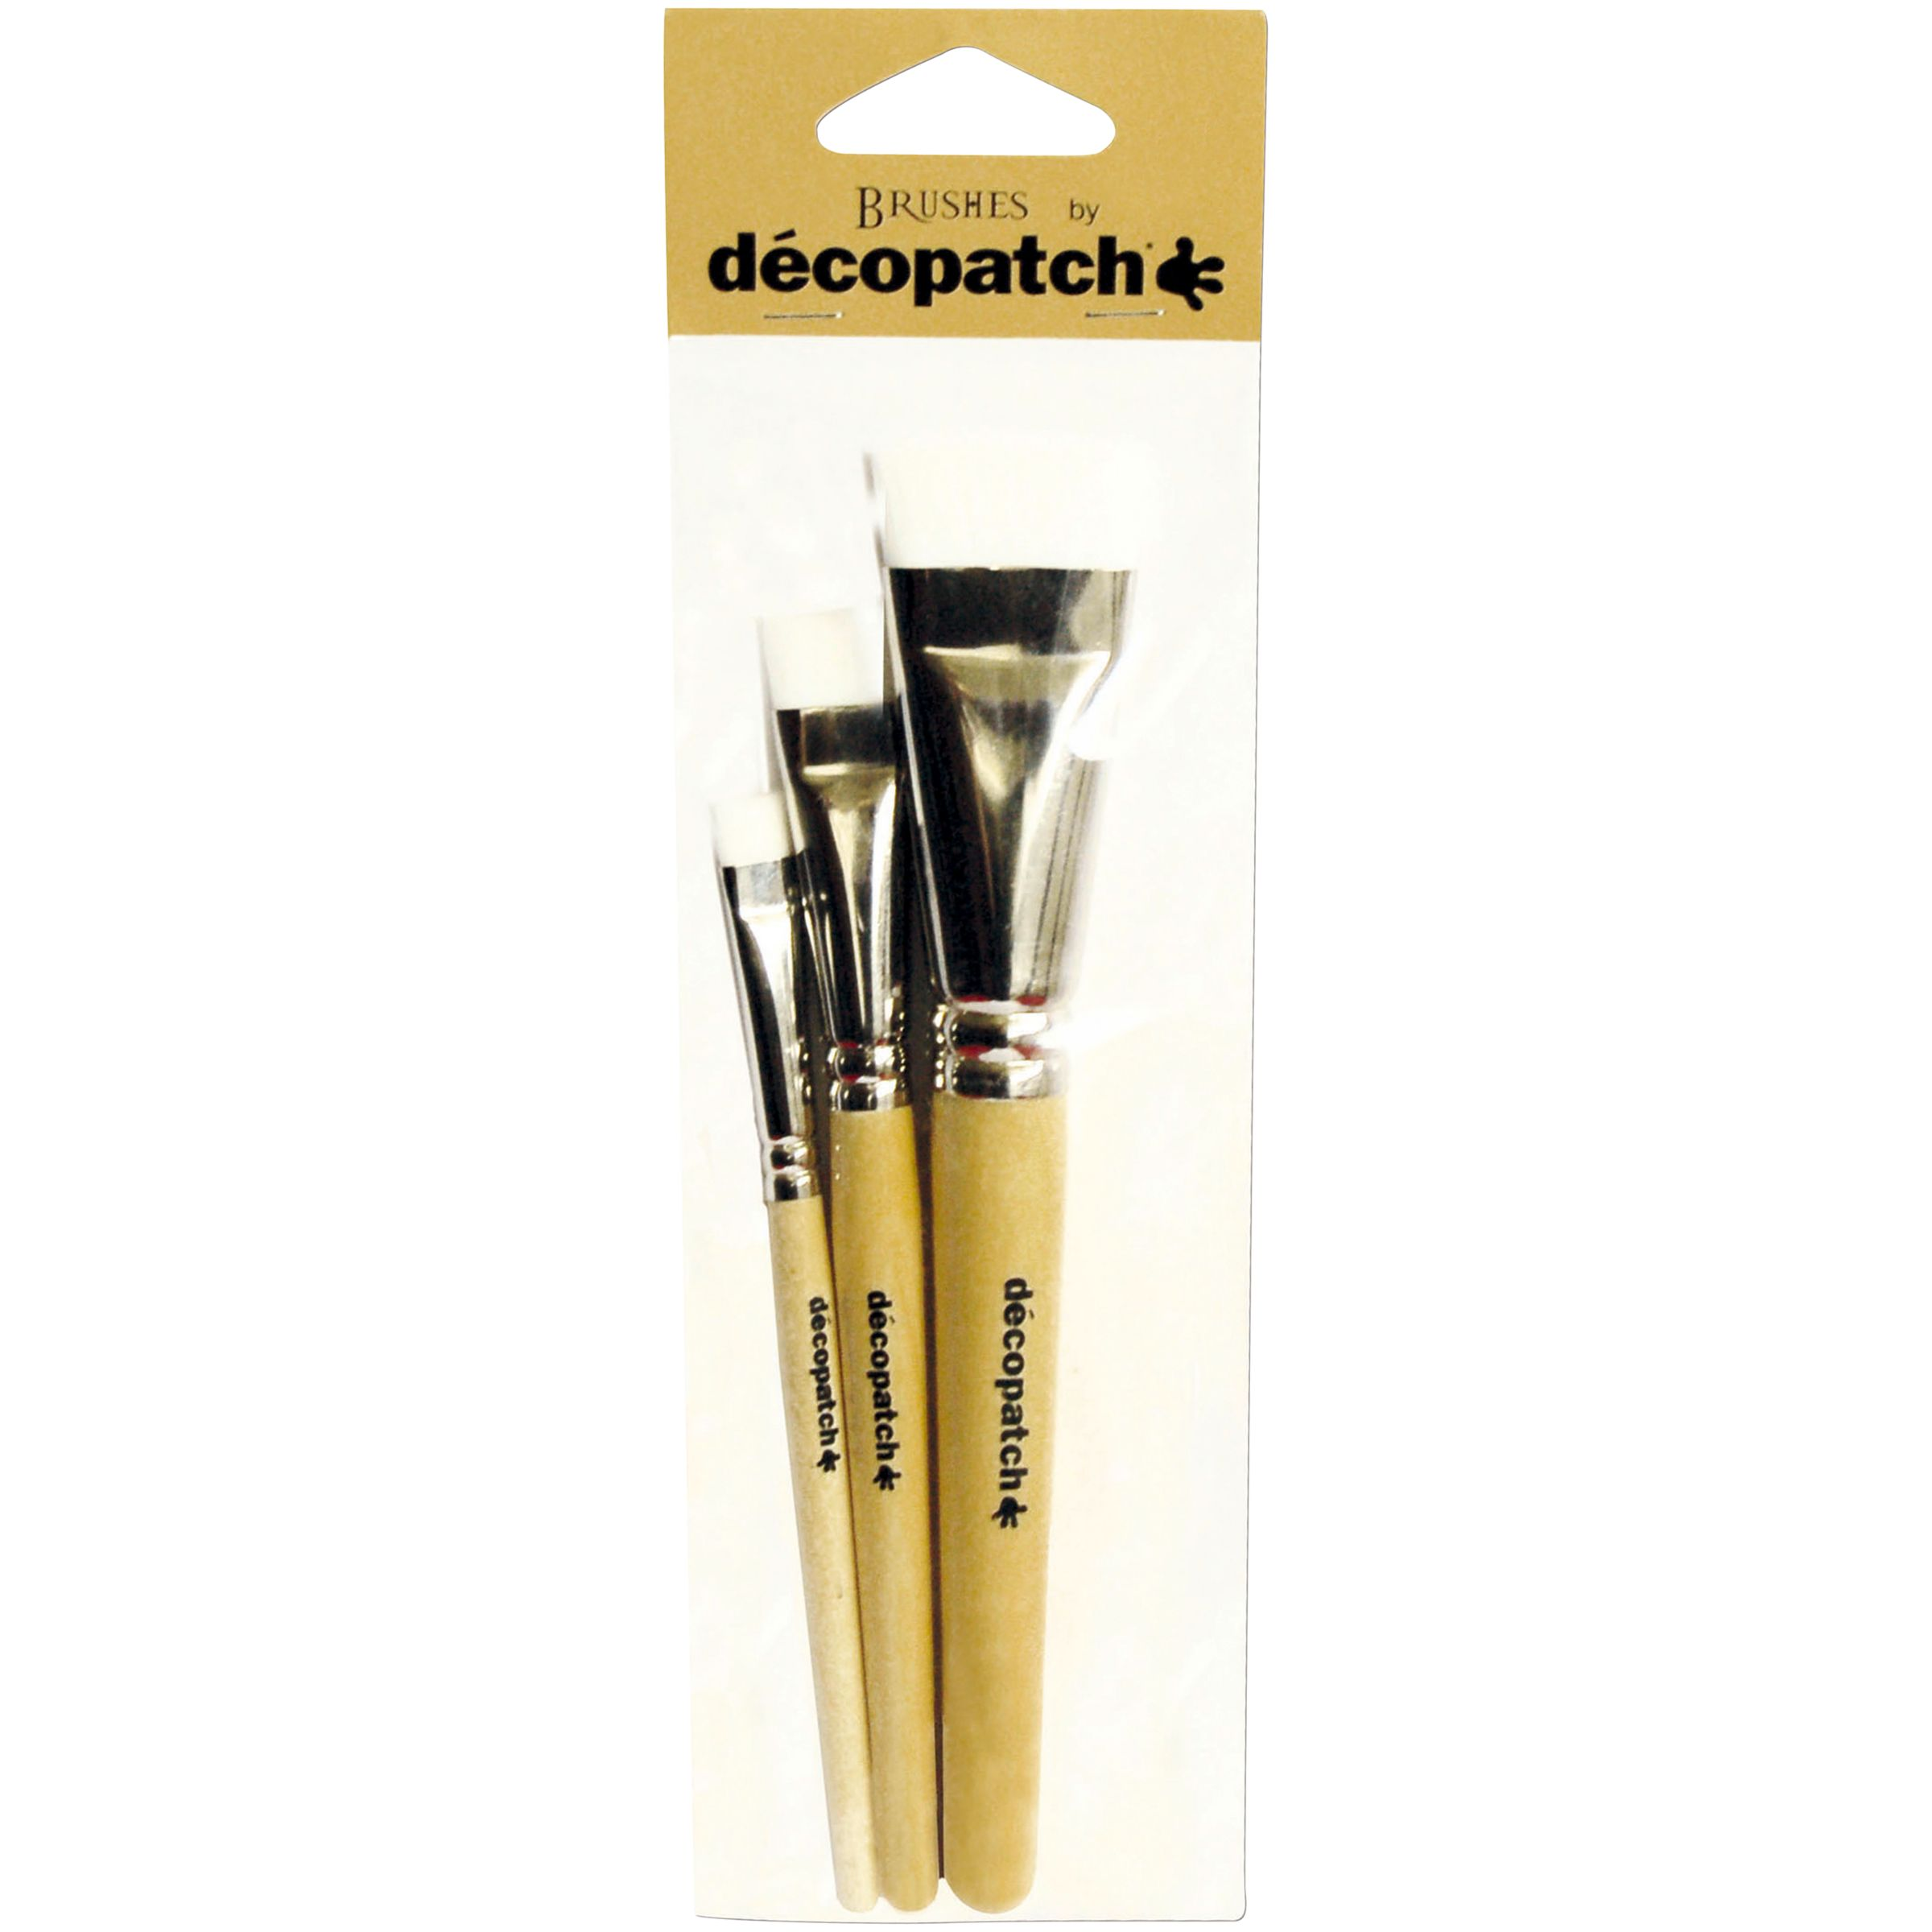 Decopatch Mixed Brushes, Pack of 3